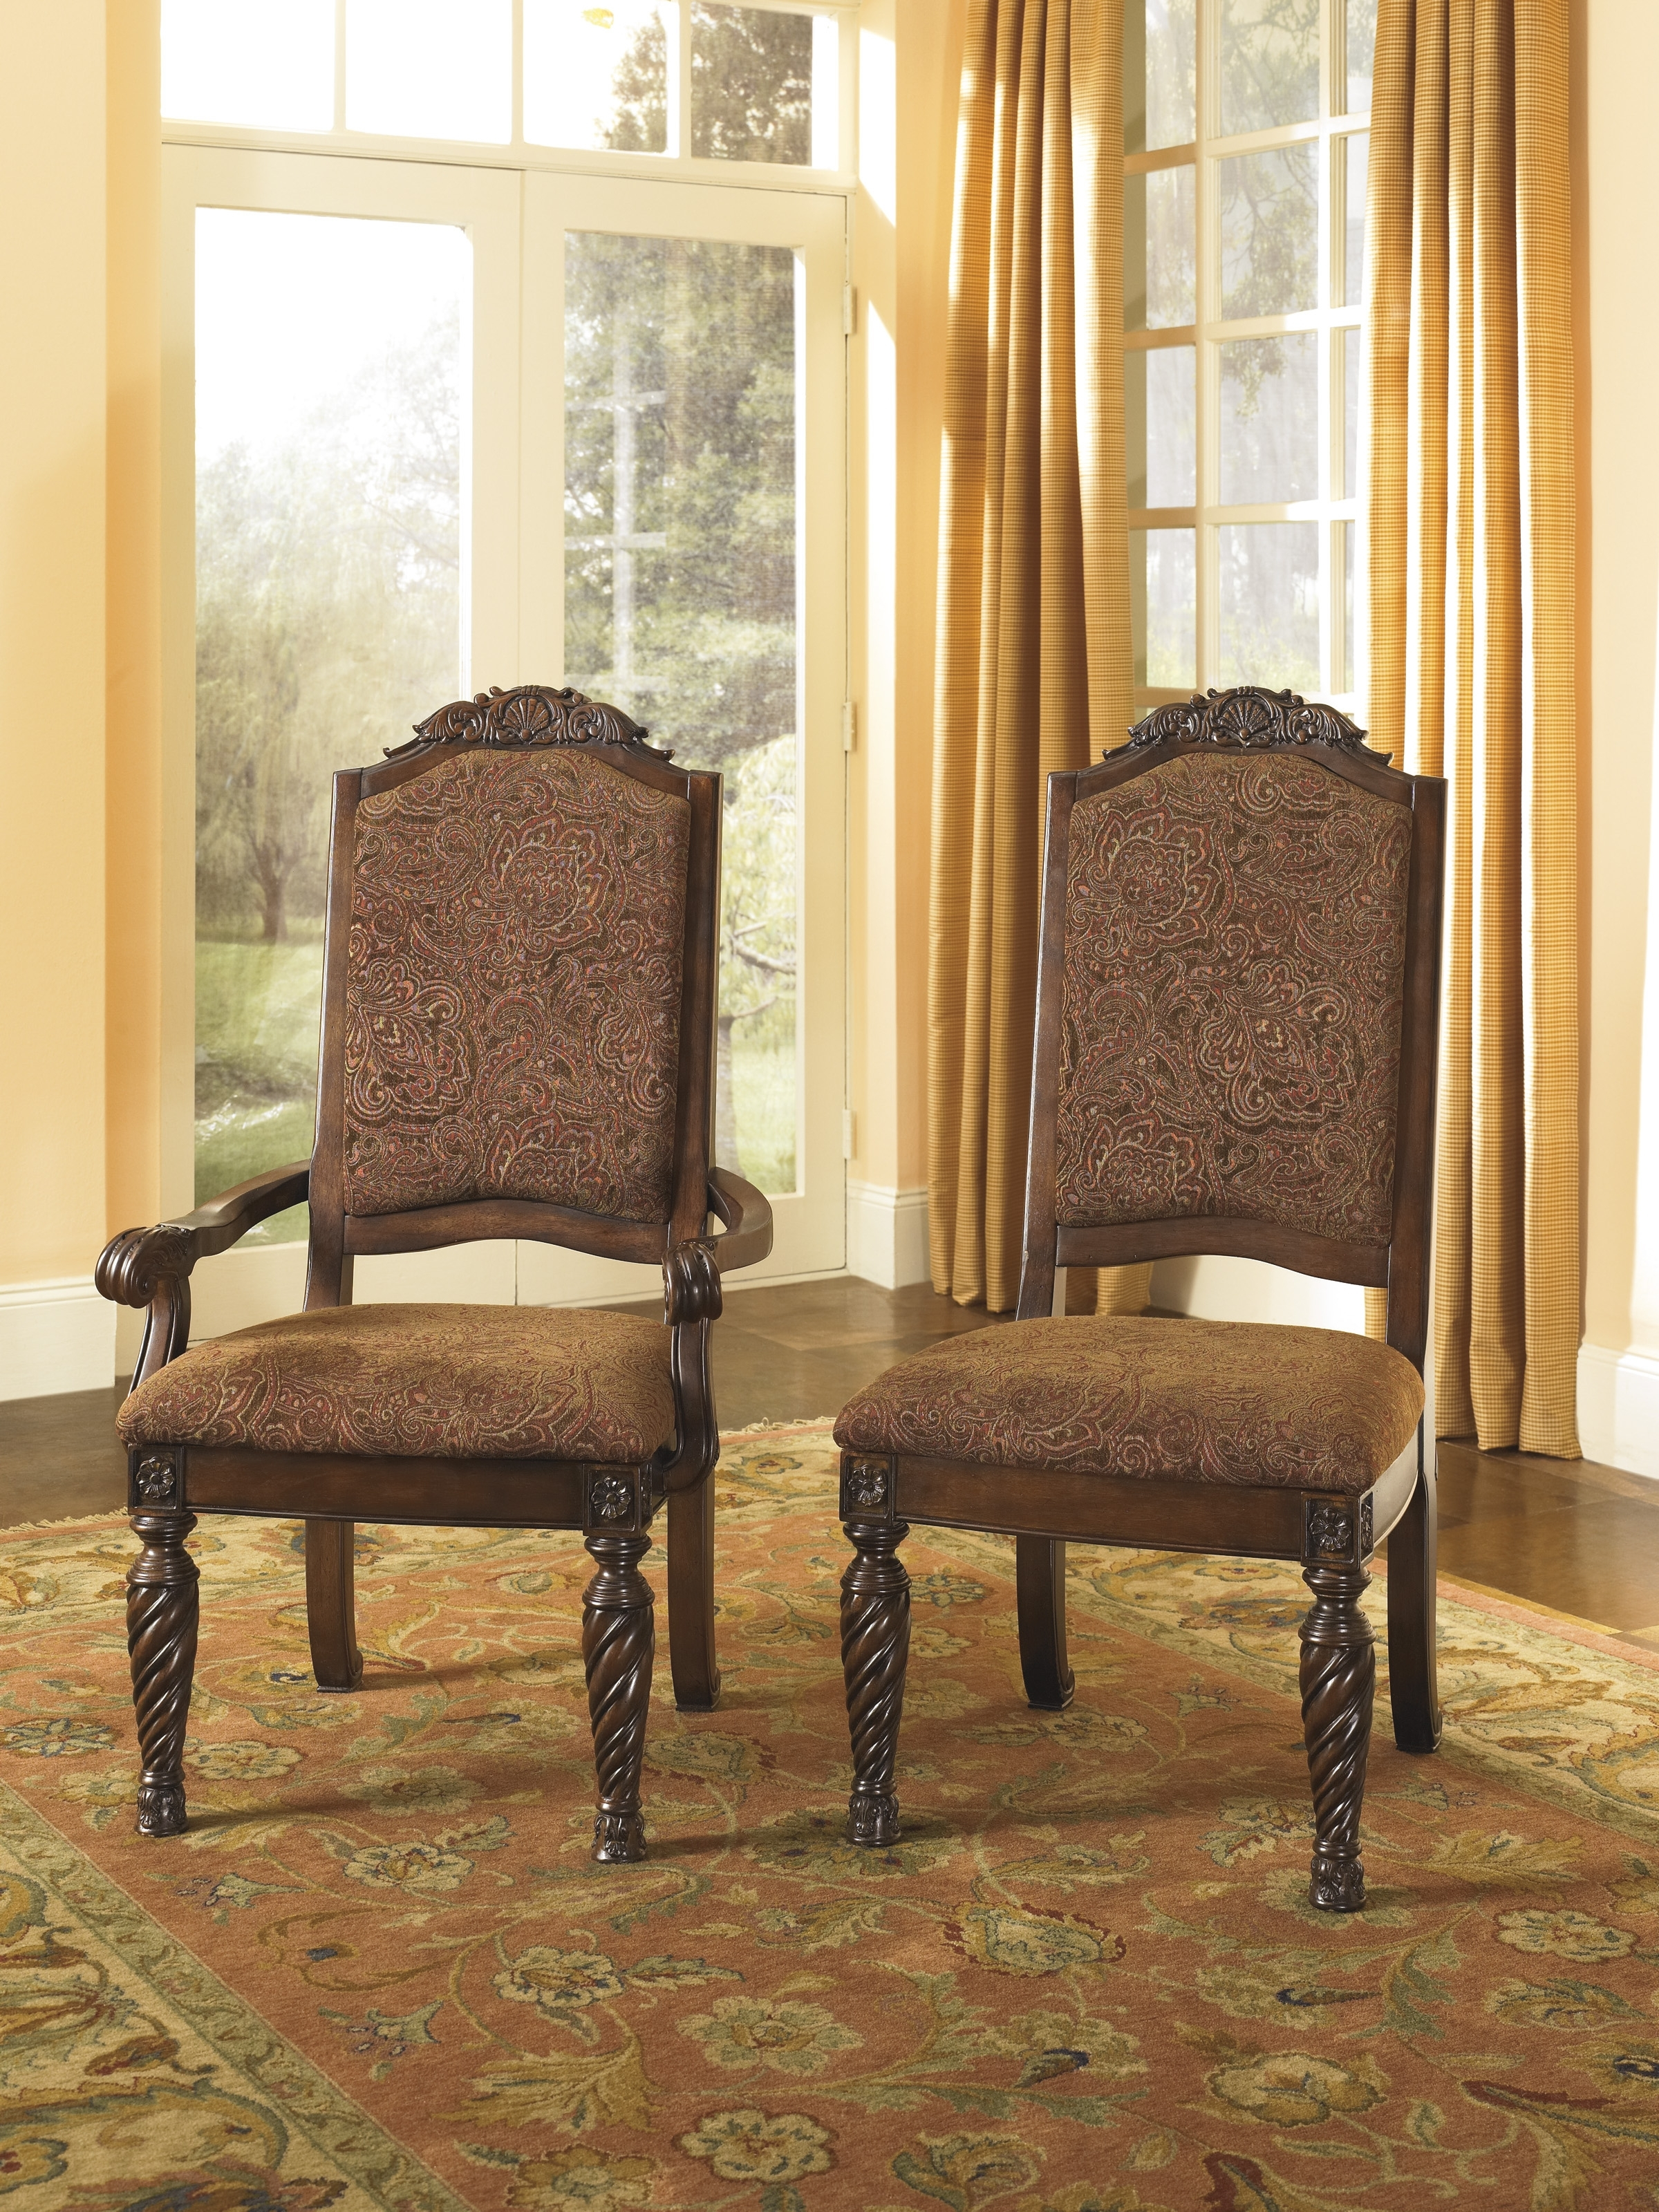 Https://www.localfurnitureoutlet/mattresses.html 2018 07 18 Intended For 2017 Palazzo 9 Piece Dining Sets With Pearson White Side Chairs (Gallery 23 of 25)